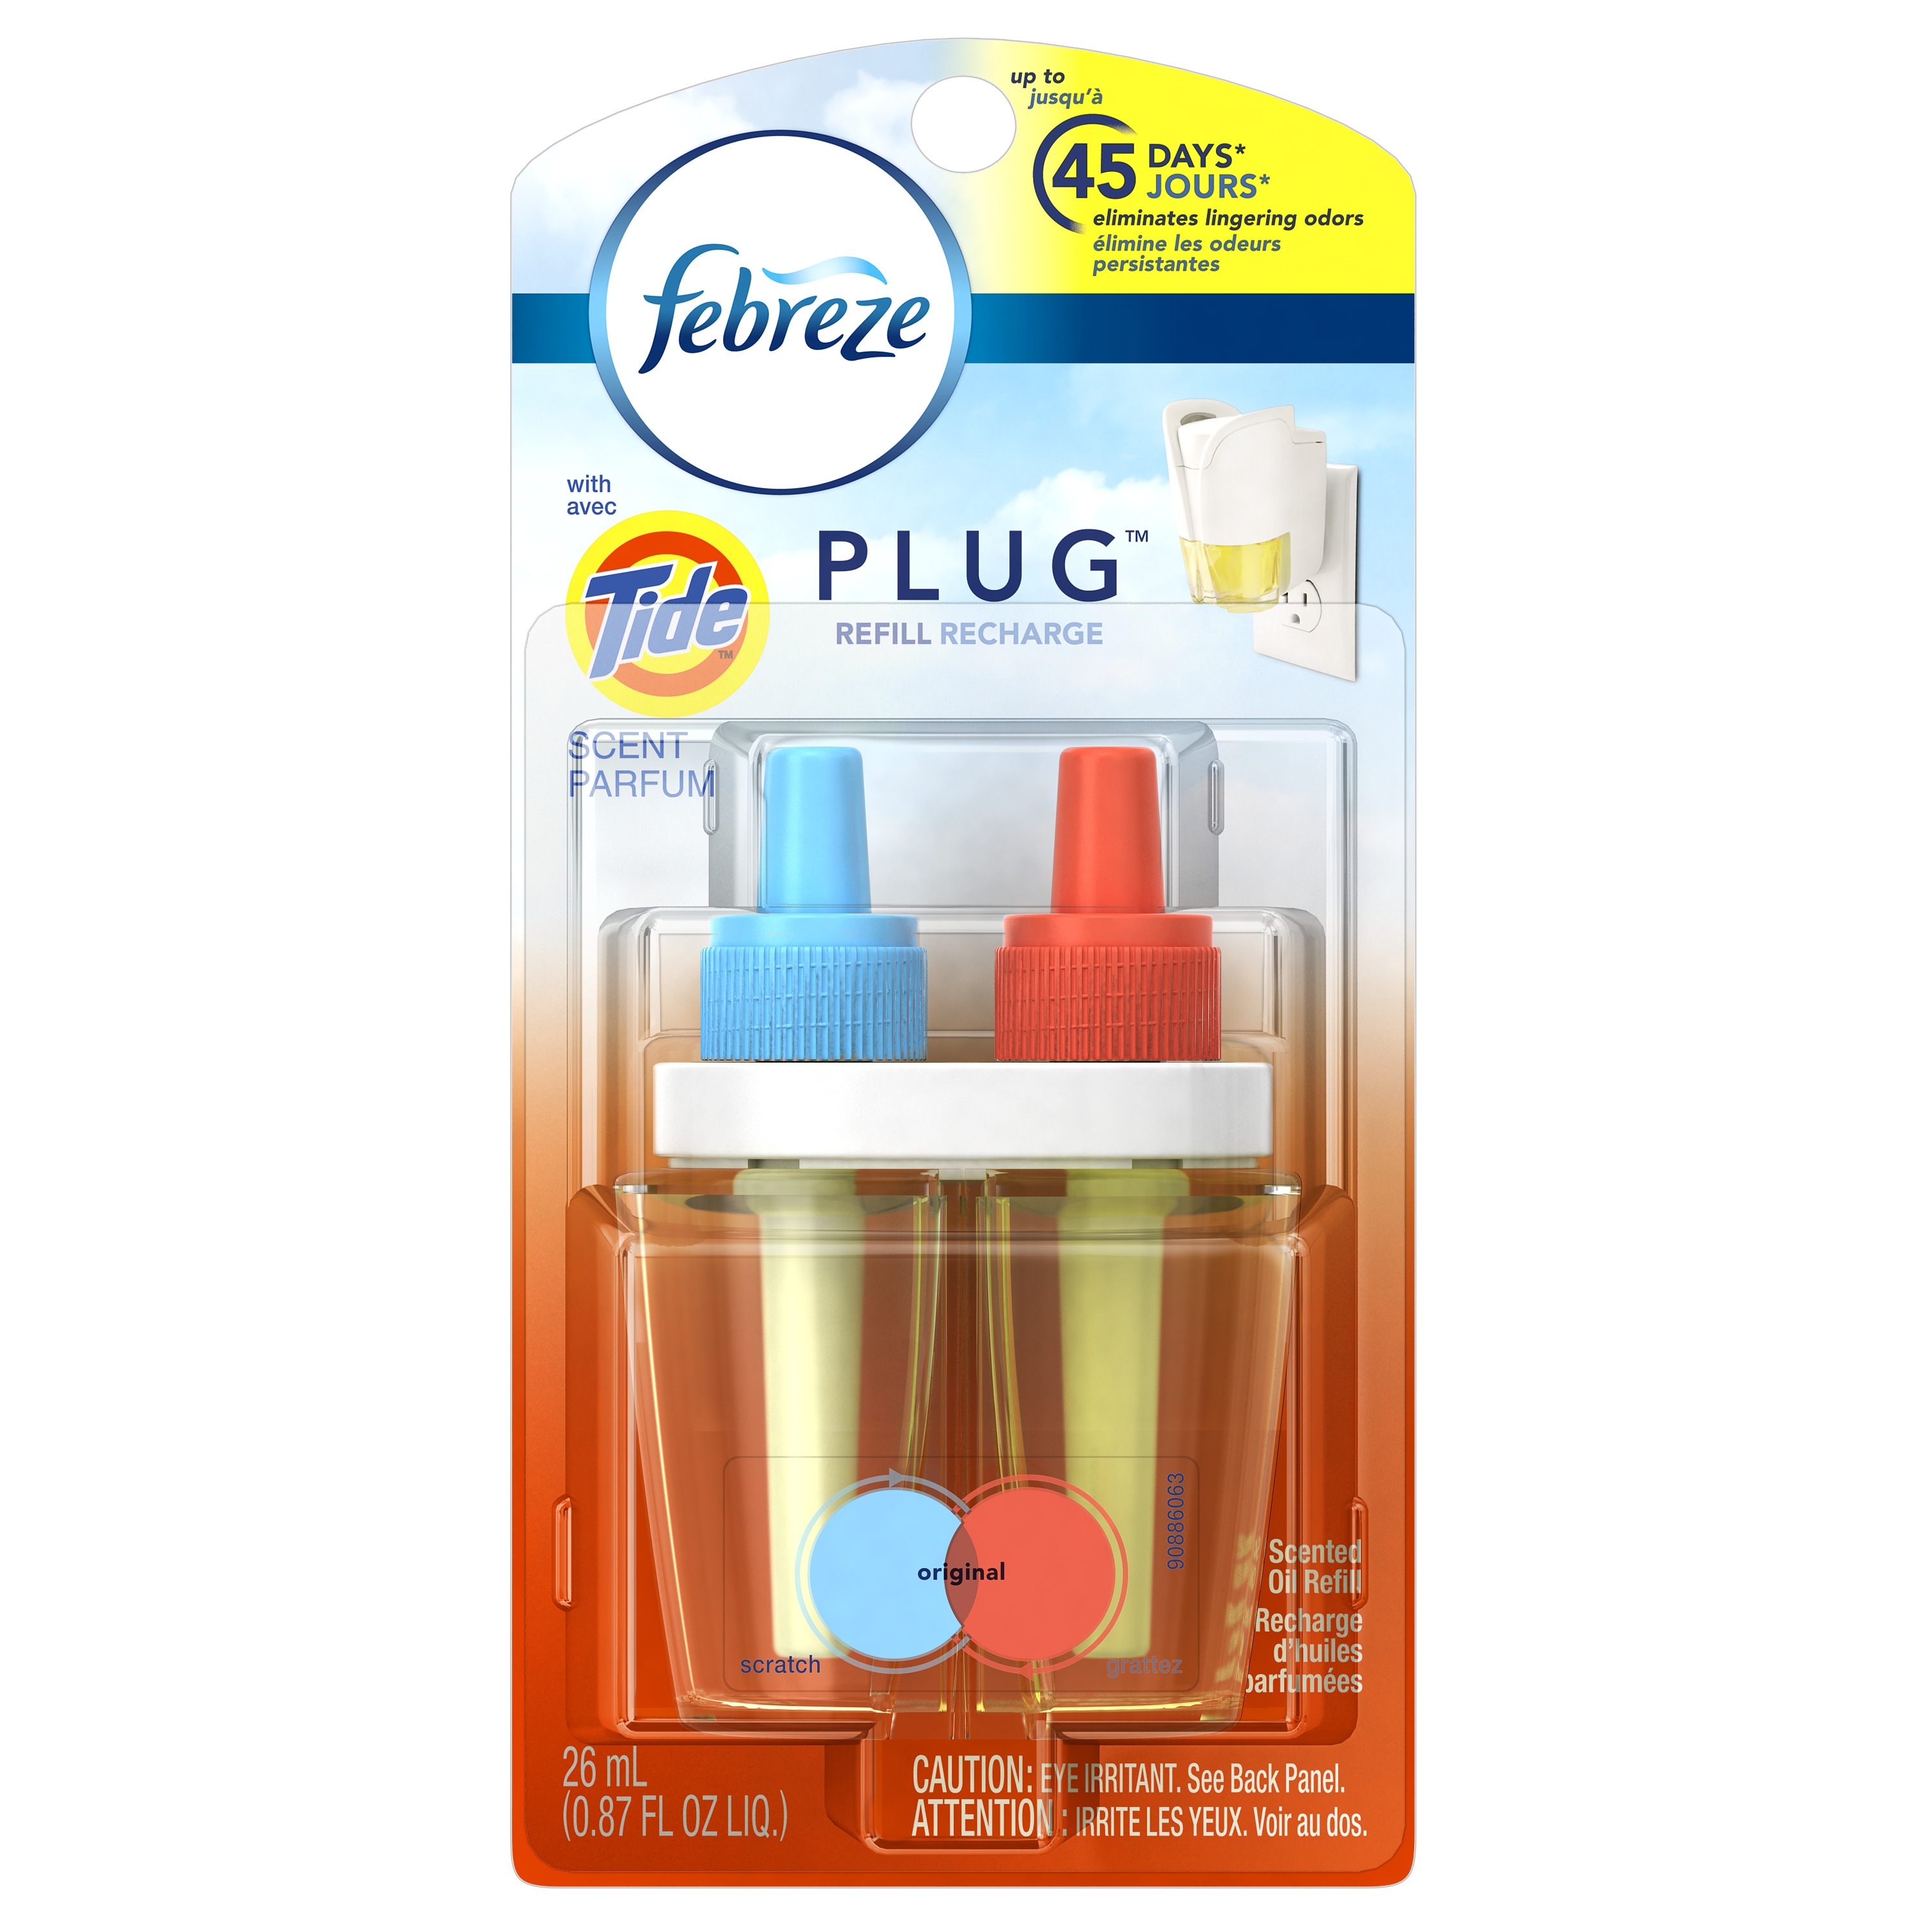 Febreze PLUG Air Freshener Refill with Tide Original (1 Count, 0.87 oz)